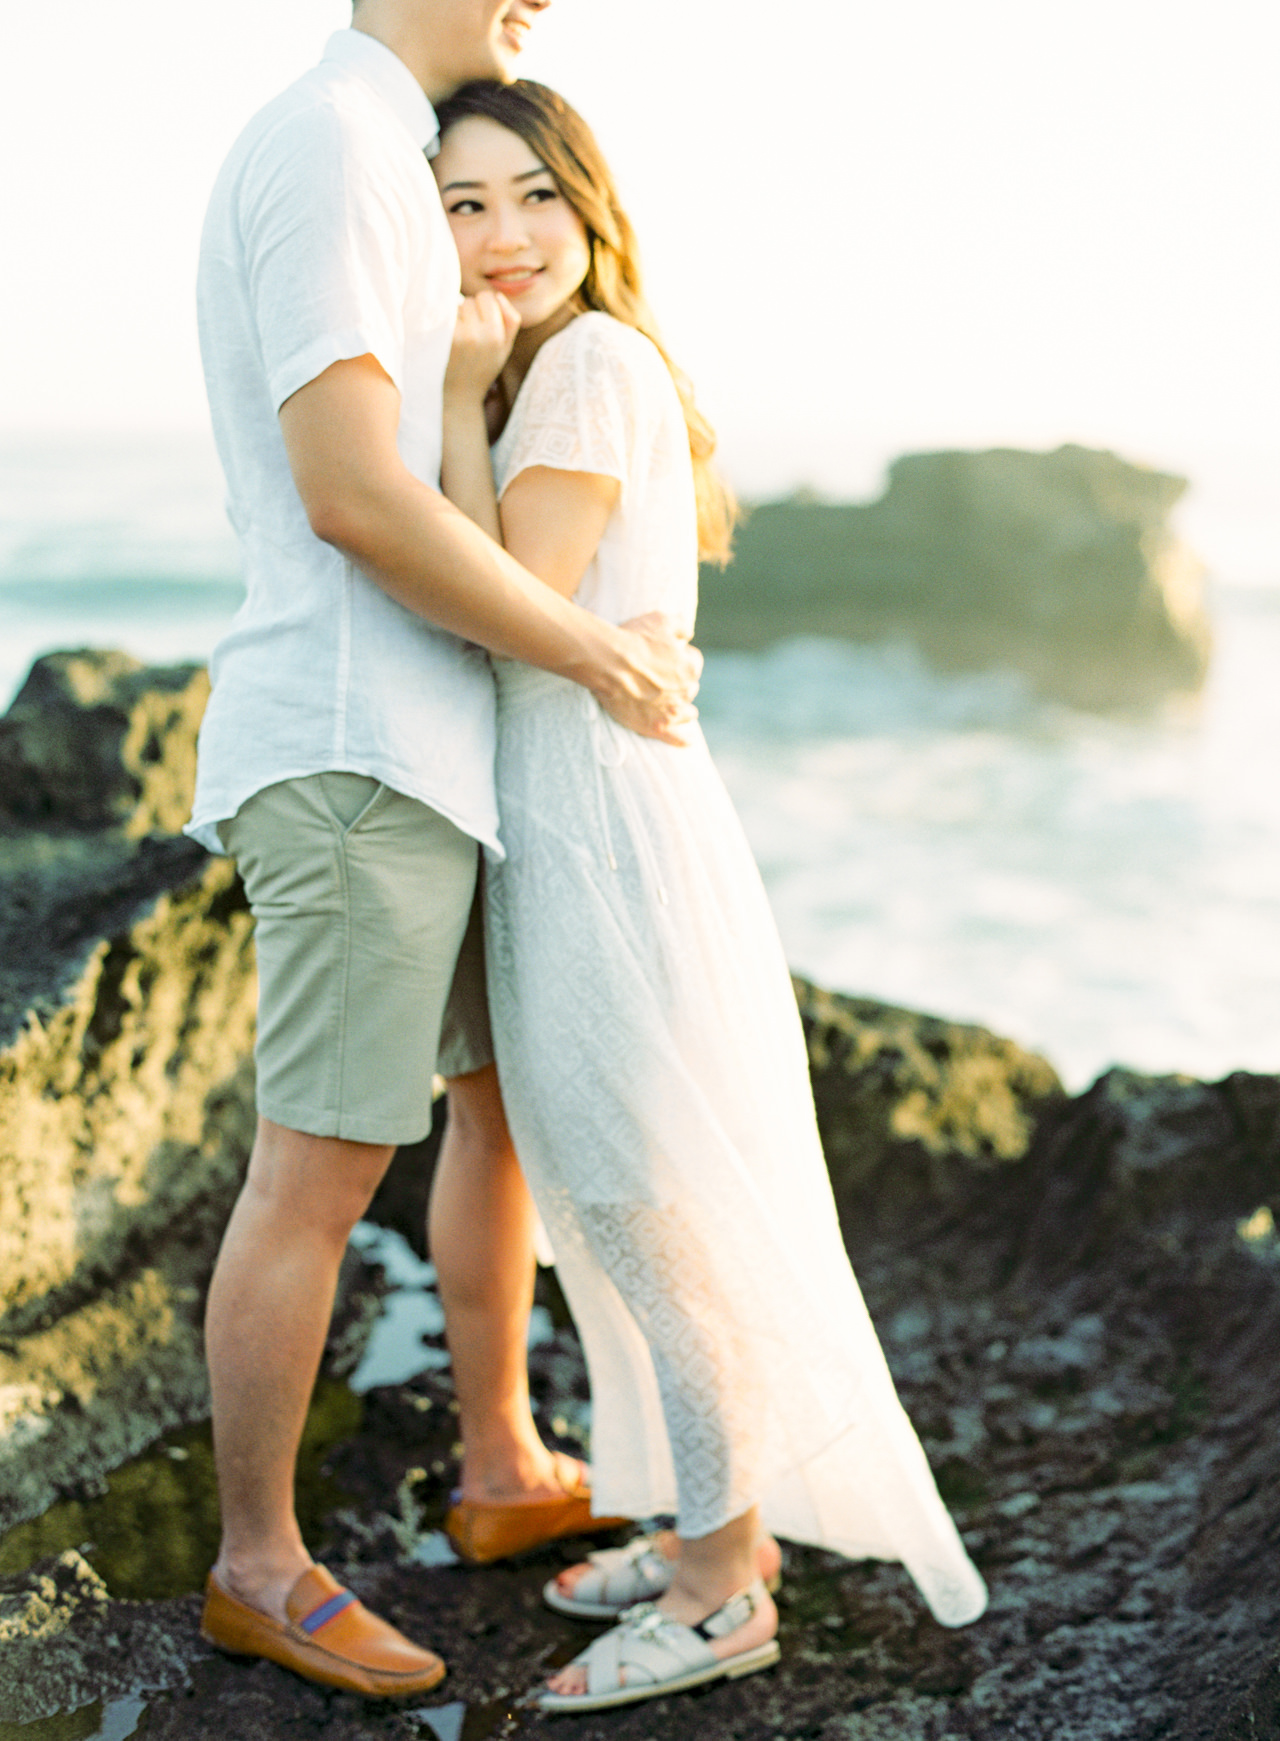 J&S: Casual Pre-wedding Photoshoot in Bali 6